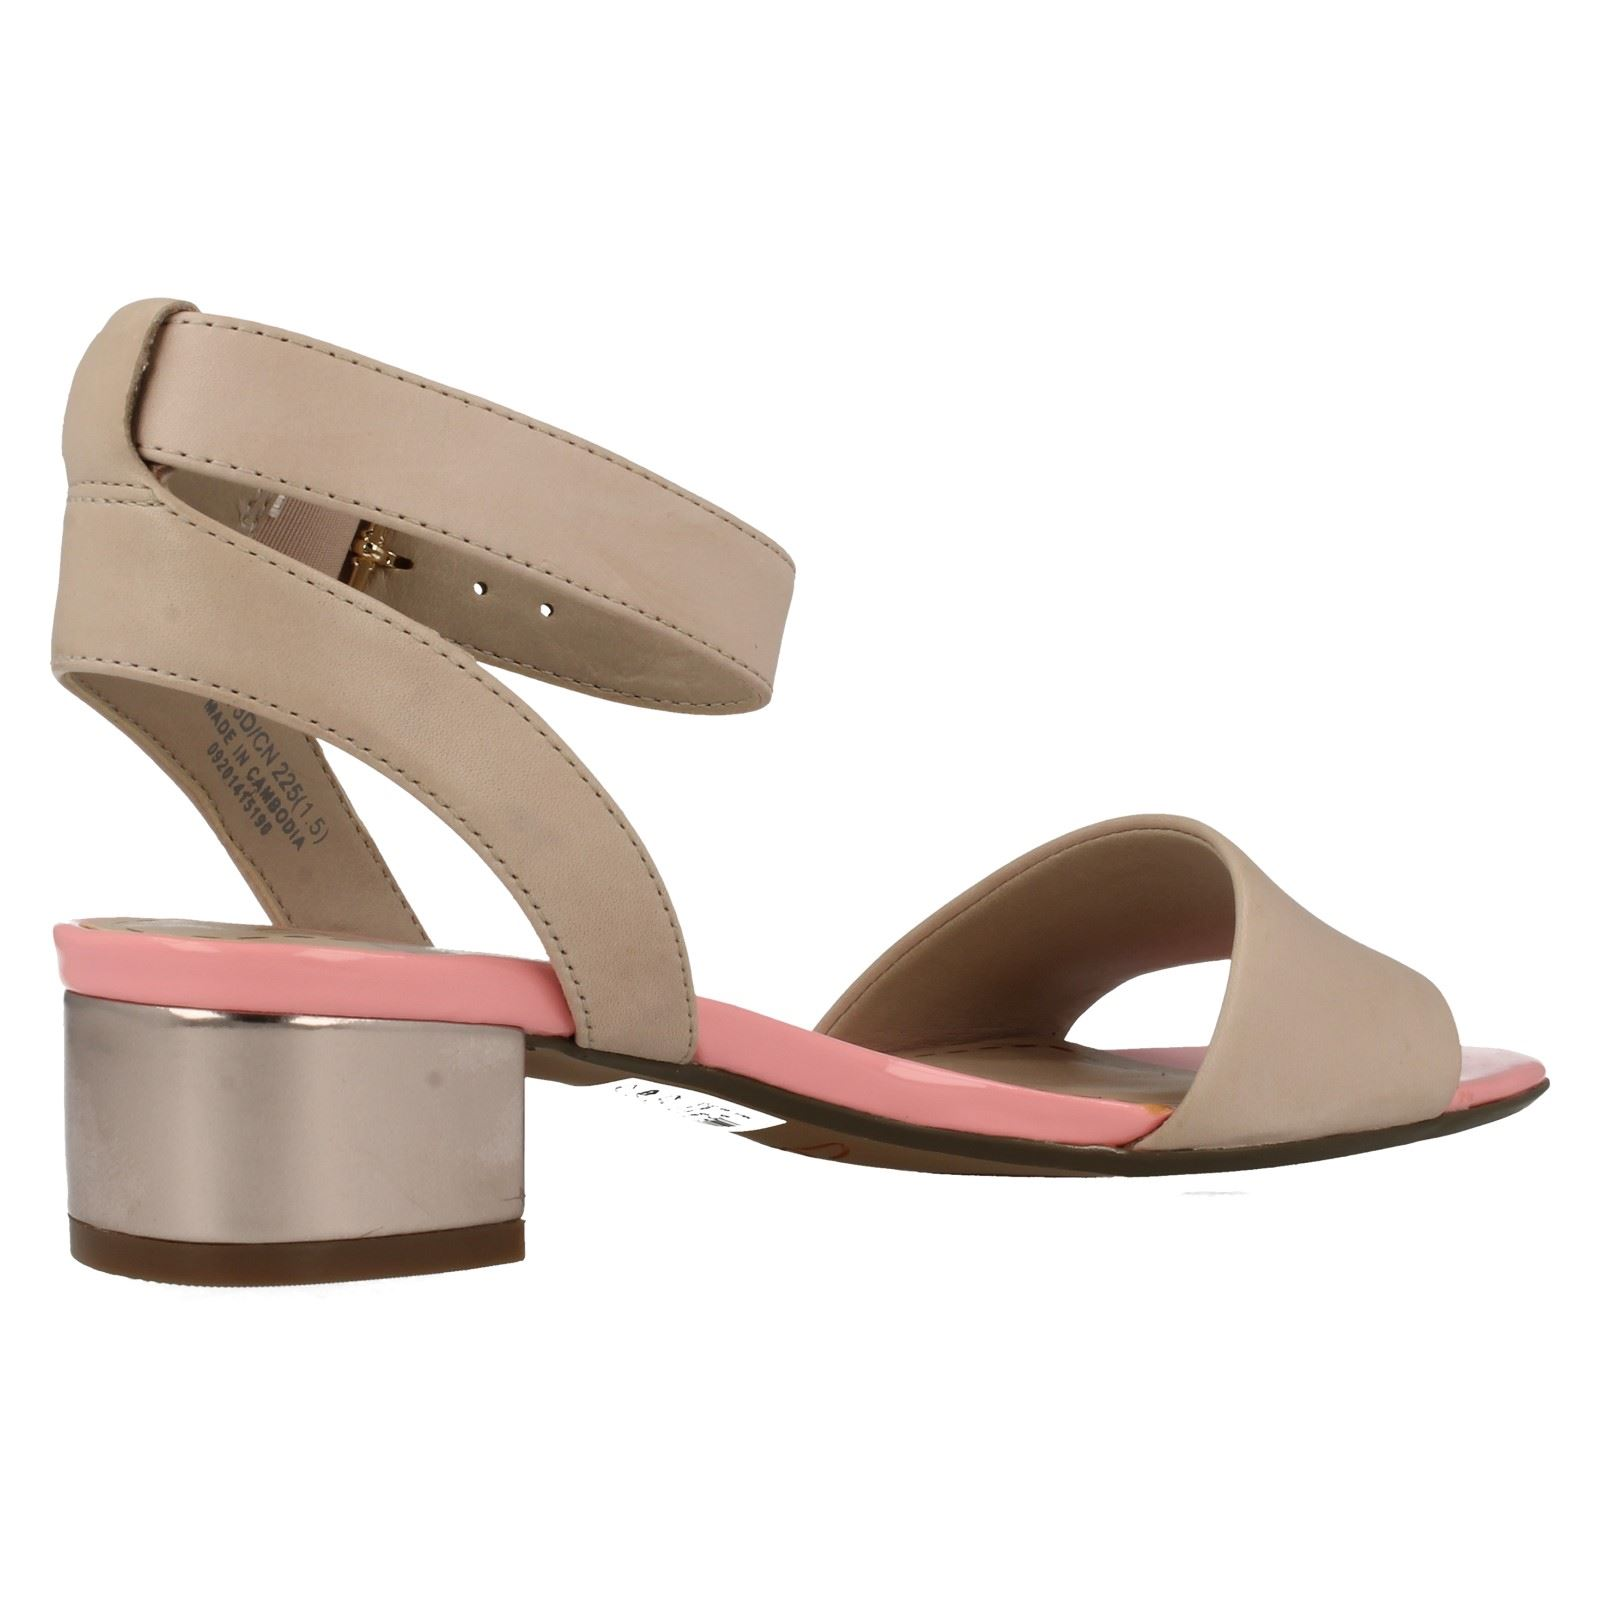 68c667b54b4c Ladies-Clarks-Sandals-039-Sharna-Balcony-039 thumbnail 6